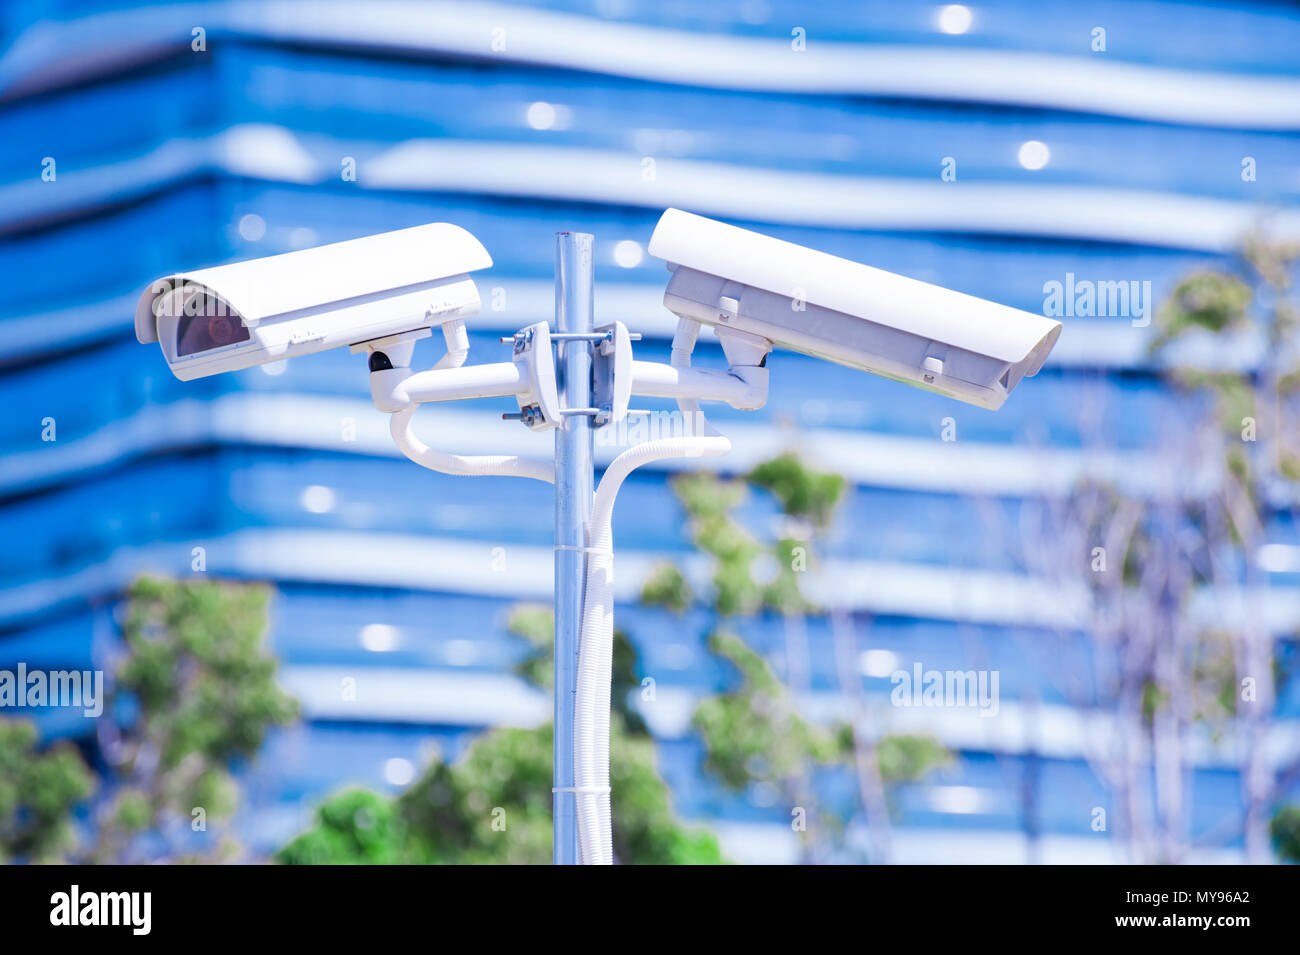 CCTV camera or surveillance operaiting with blue building in background - Stock Image